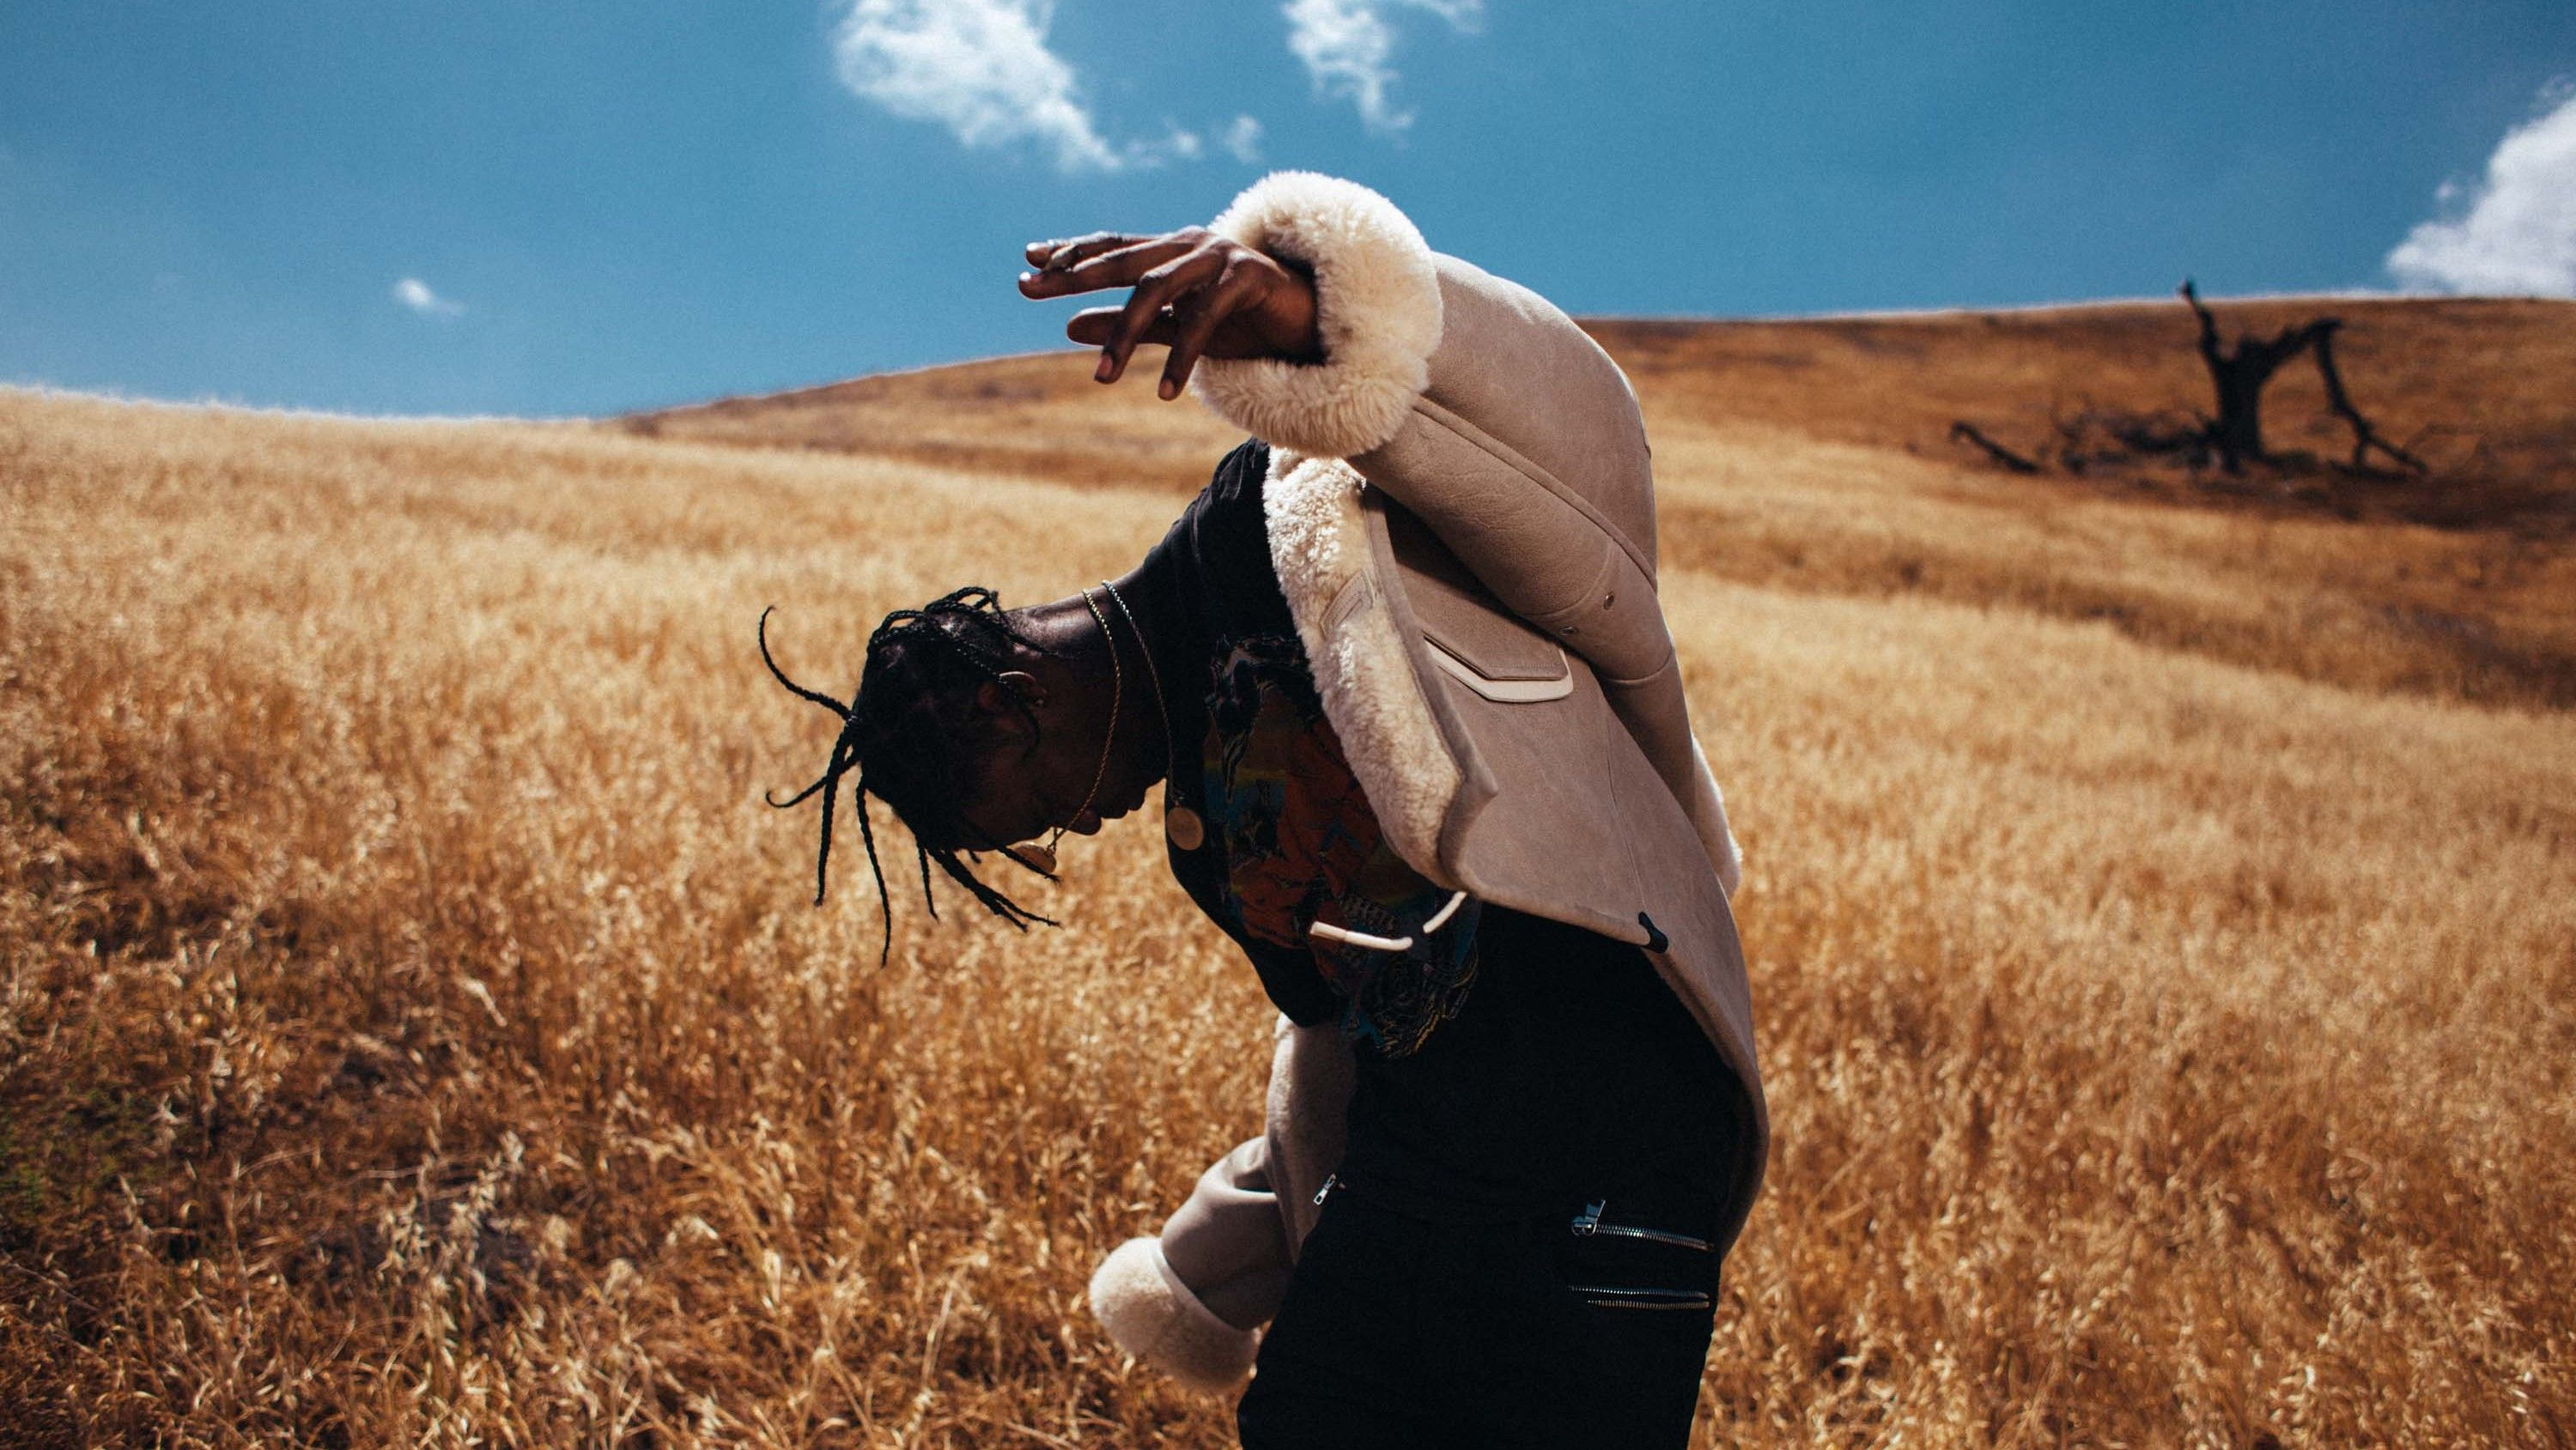 ic: Travis Scott in an oversized beige shearling jacket during the Rodeo (2015) era